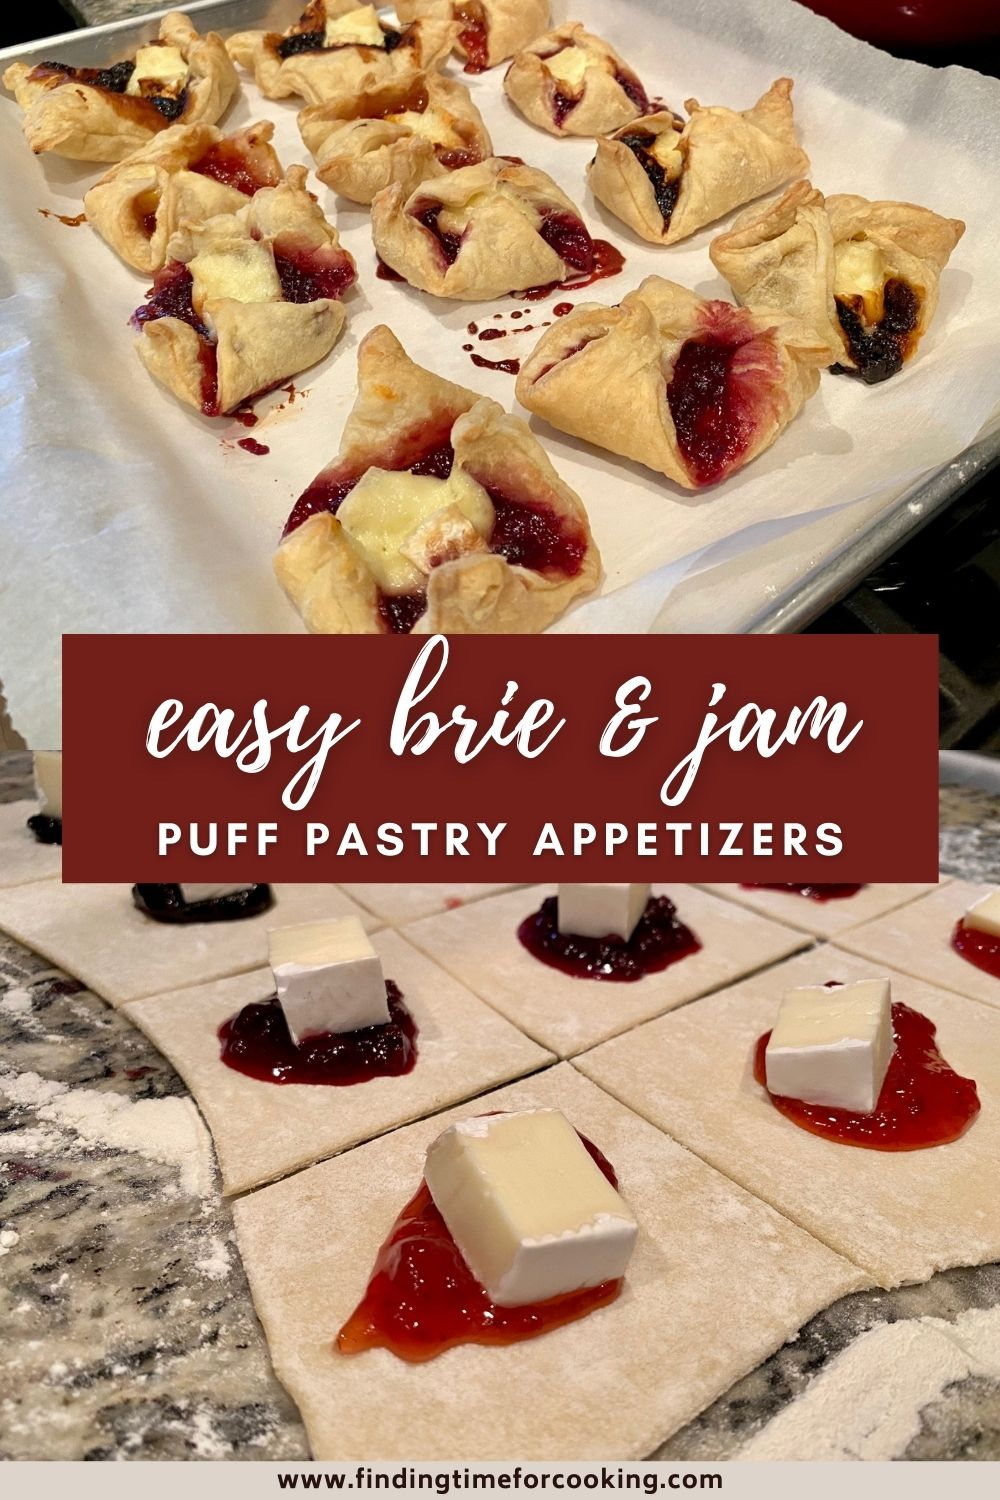 Easy Brie & Jam Puff Pastry Bites | This super easy, fast appetizer is perfect for a dinner party, brunch, a bridal shower, or any special occasion. Just 3 ingredients make these brie & jam bites a hit! Easy hors d'oeuvres ideas, easy appetizer ideas. #appetizer #brie #jam #puffpastry #horsdoeuvres